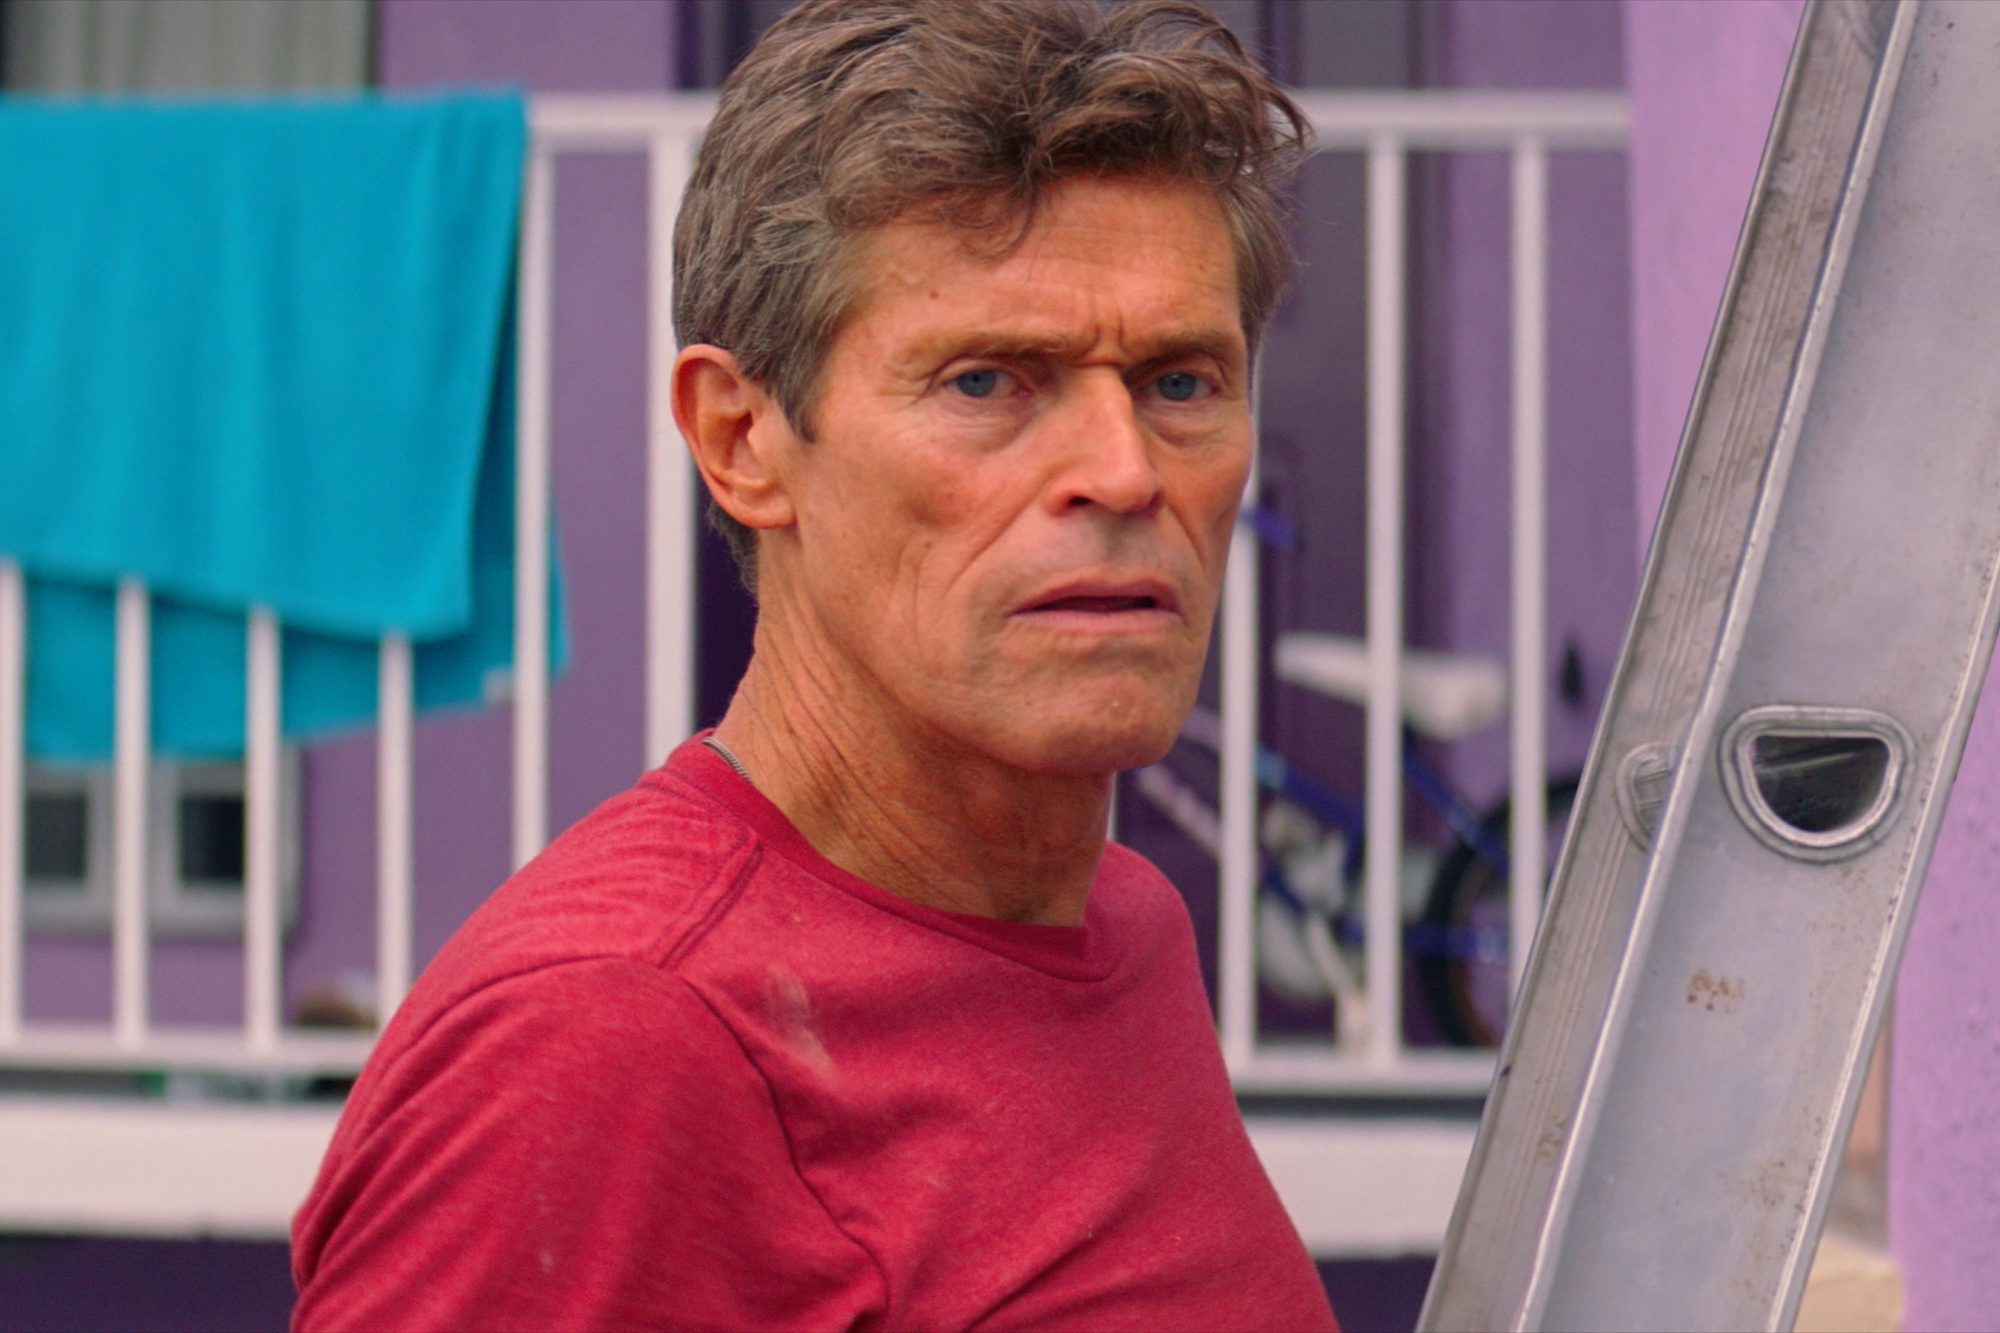 The Florida Project (2017)Willem Dafoe